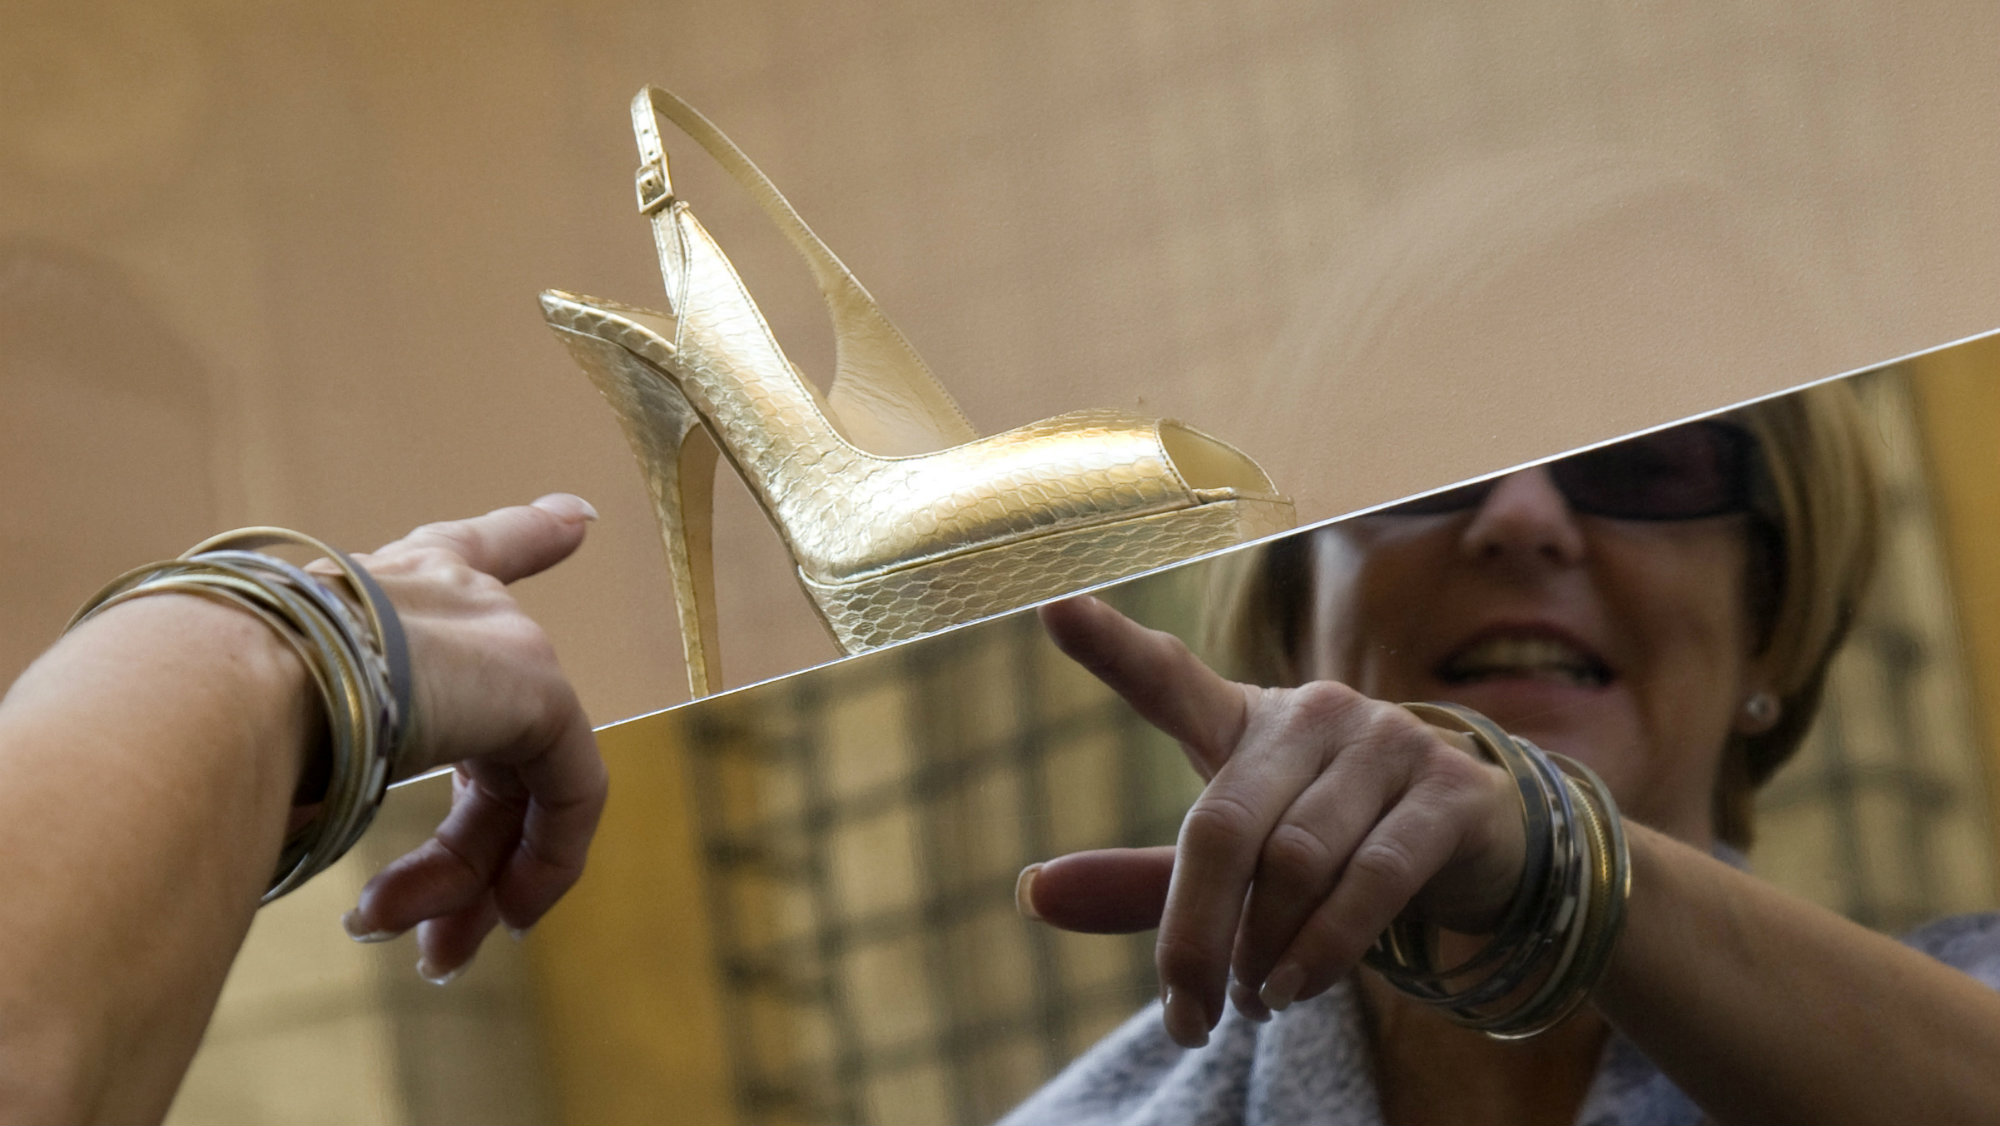 woman pointing at Jimmy Choo shoe in a window